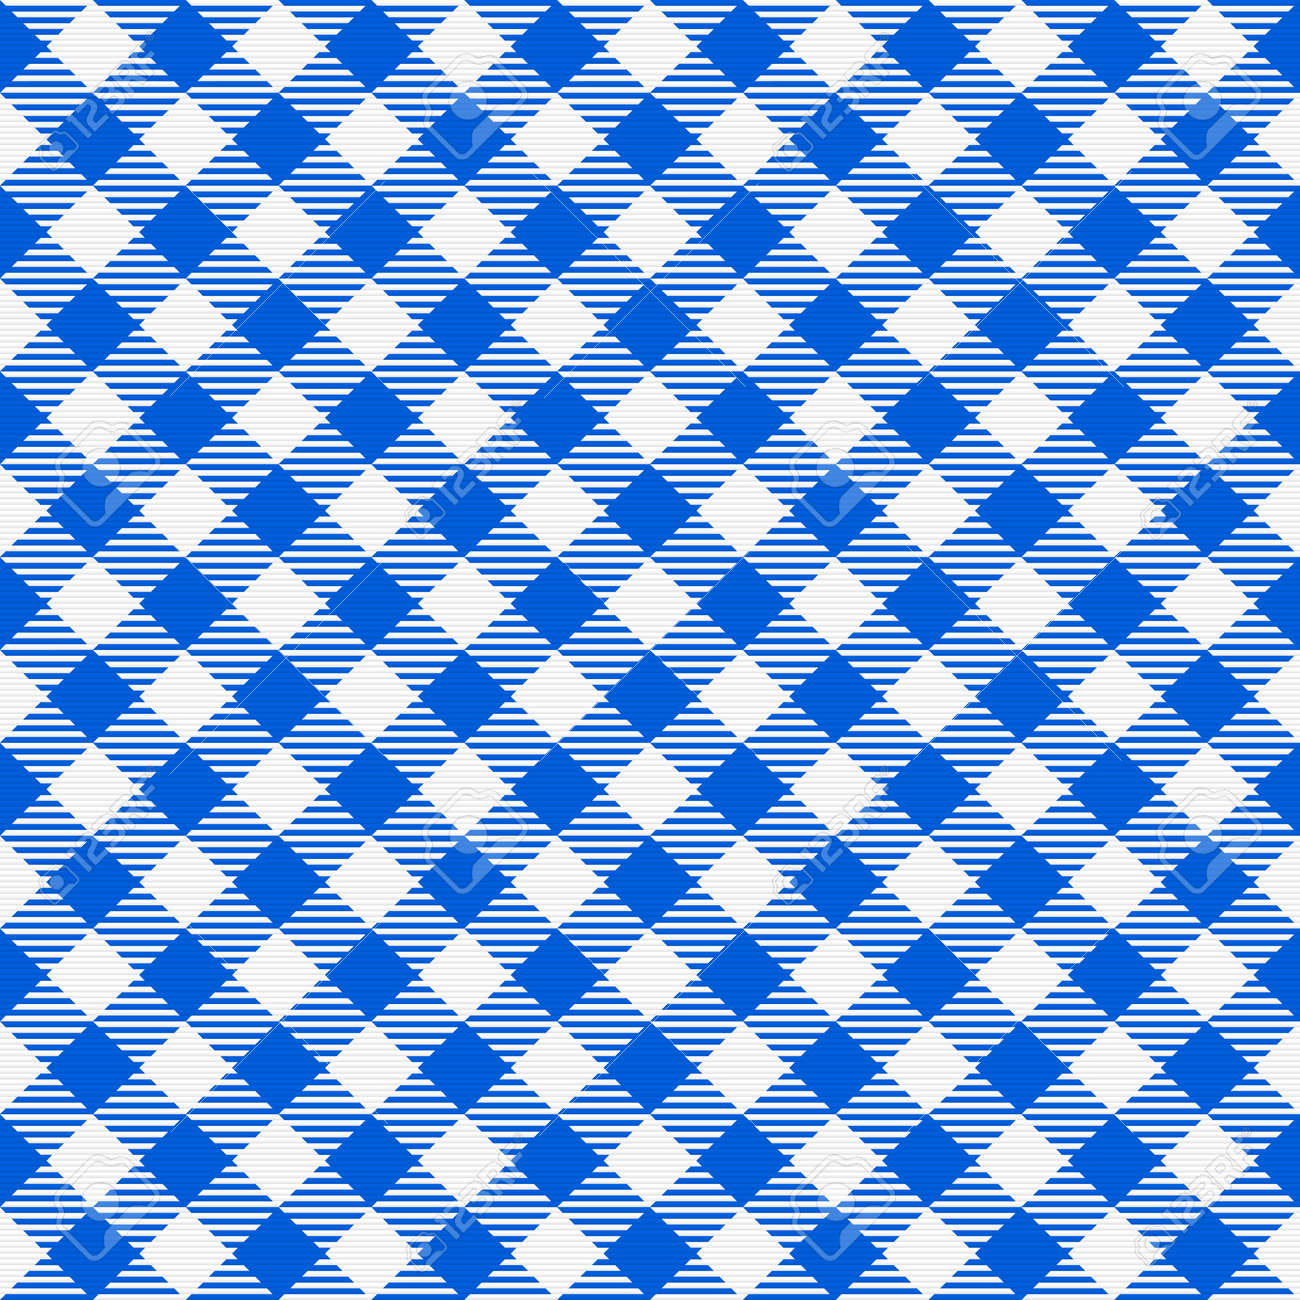 Blue And White Seamless Checkered Tablecloth. Traditional Gingham Pattern,  Checkered Fabric, Tablecloth Texture